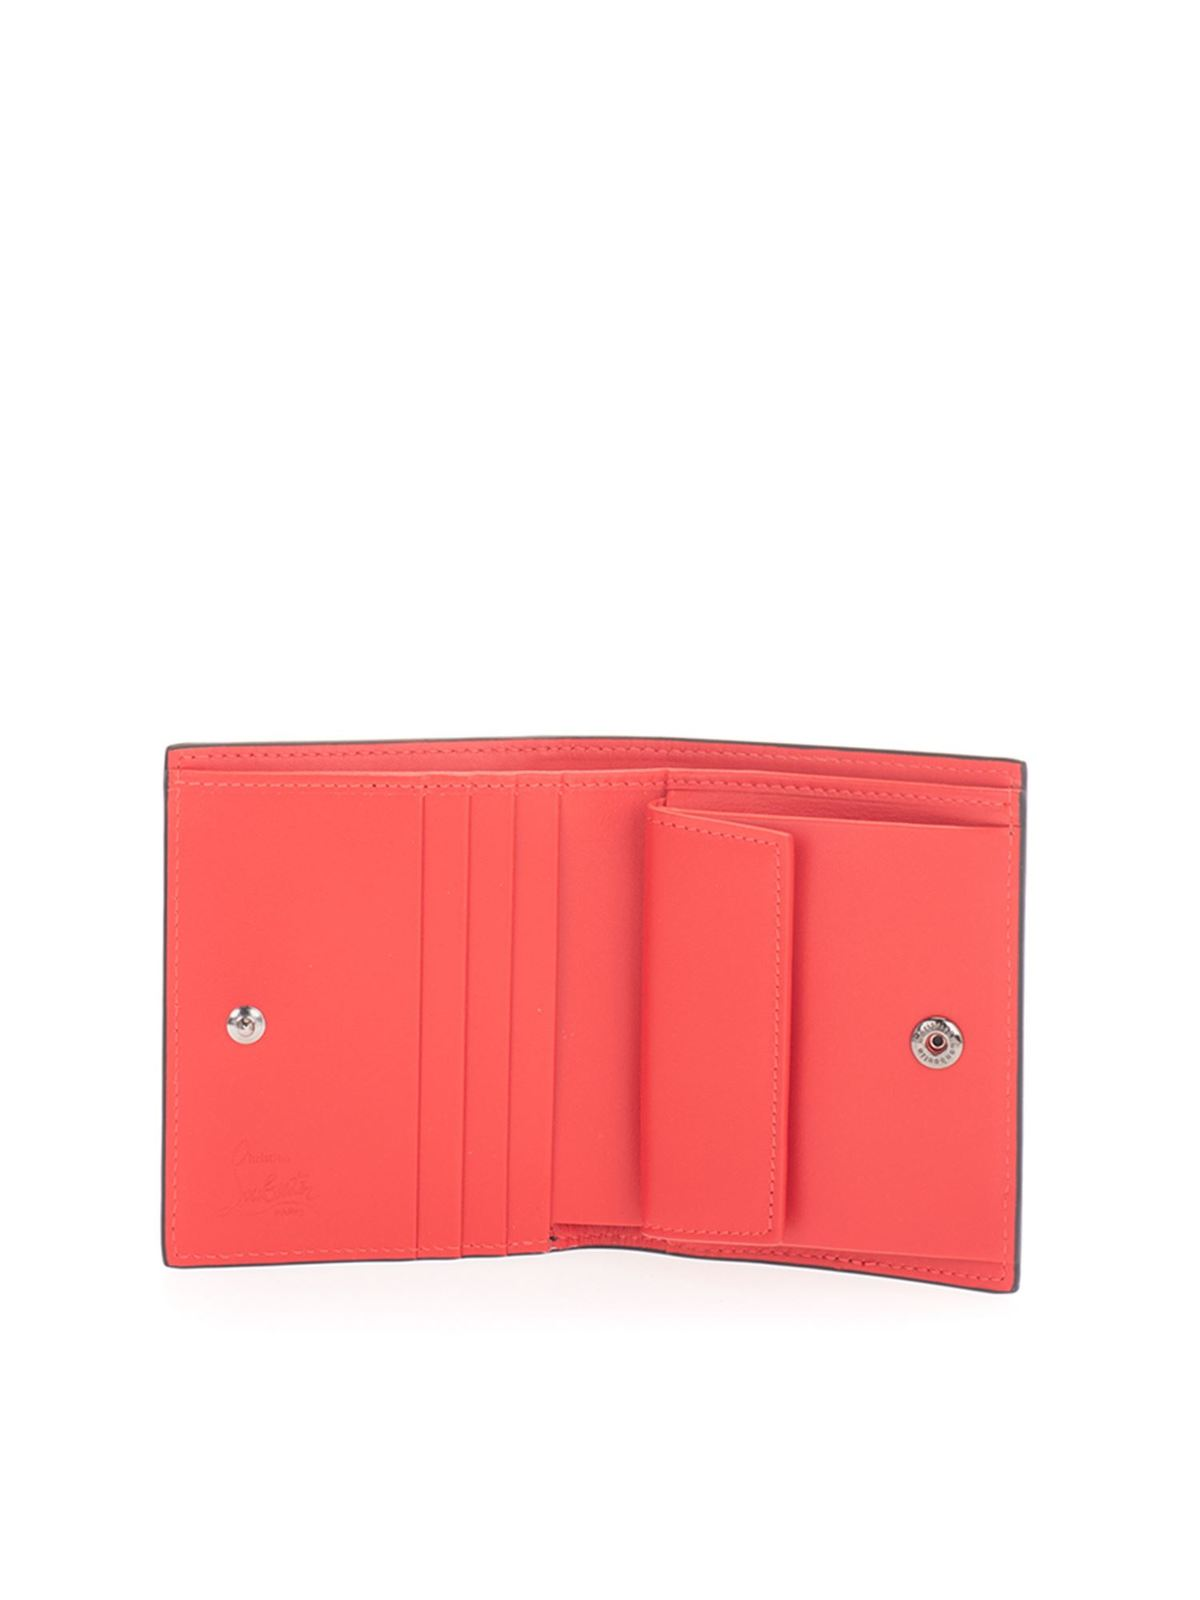 Christian Louboutin Wallets BRANDED FODING WALLET IN BLACK AND RED